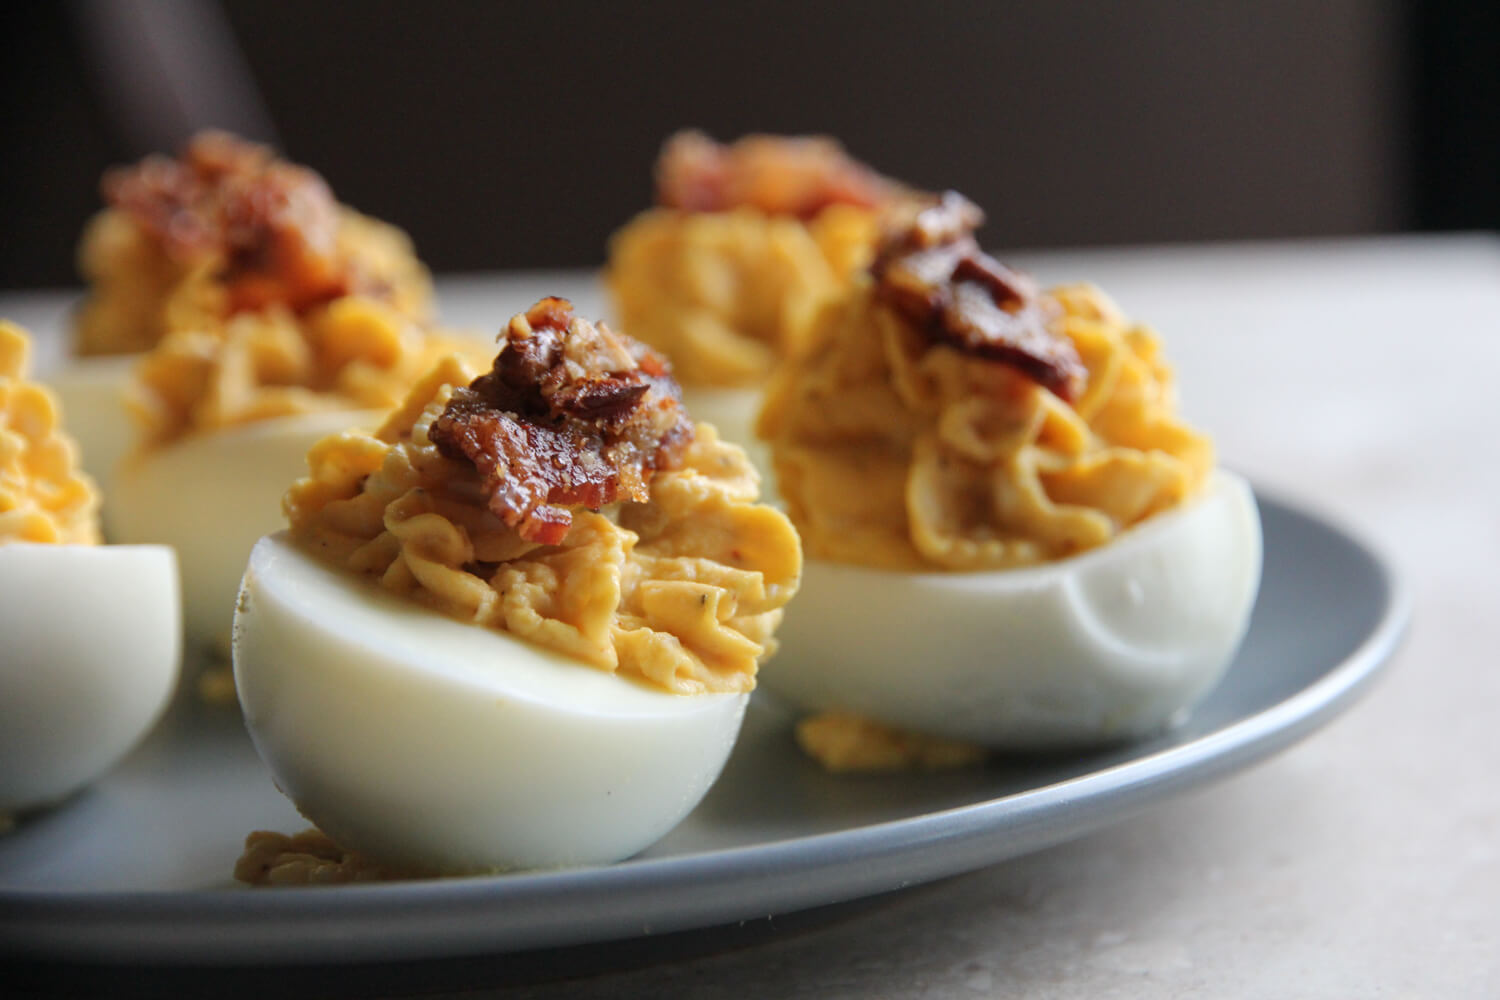 Devilled eggs made with meat church bbq rub